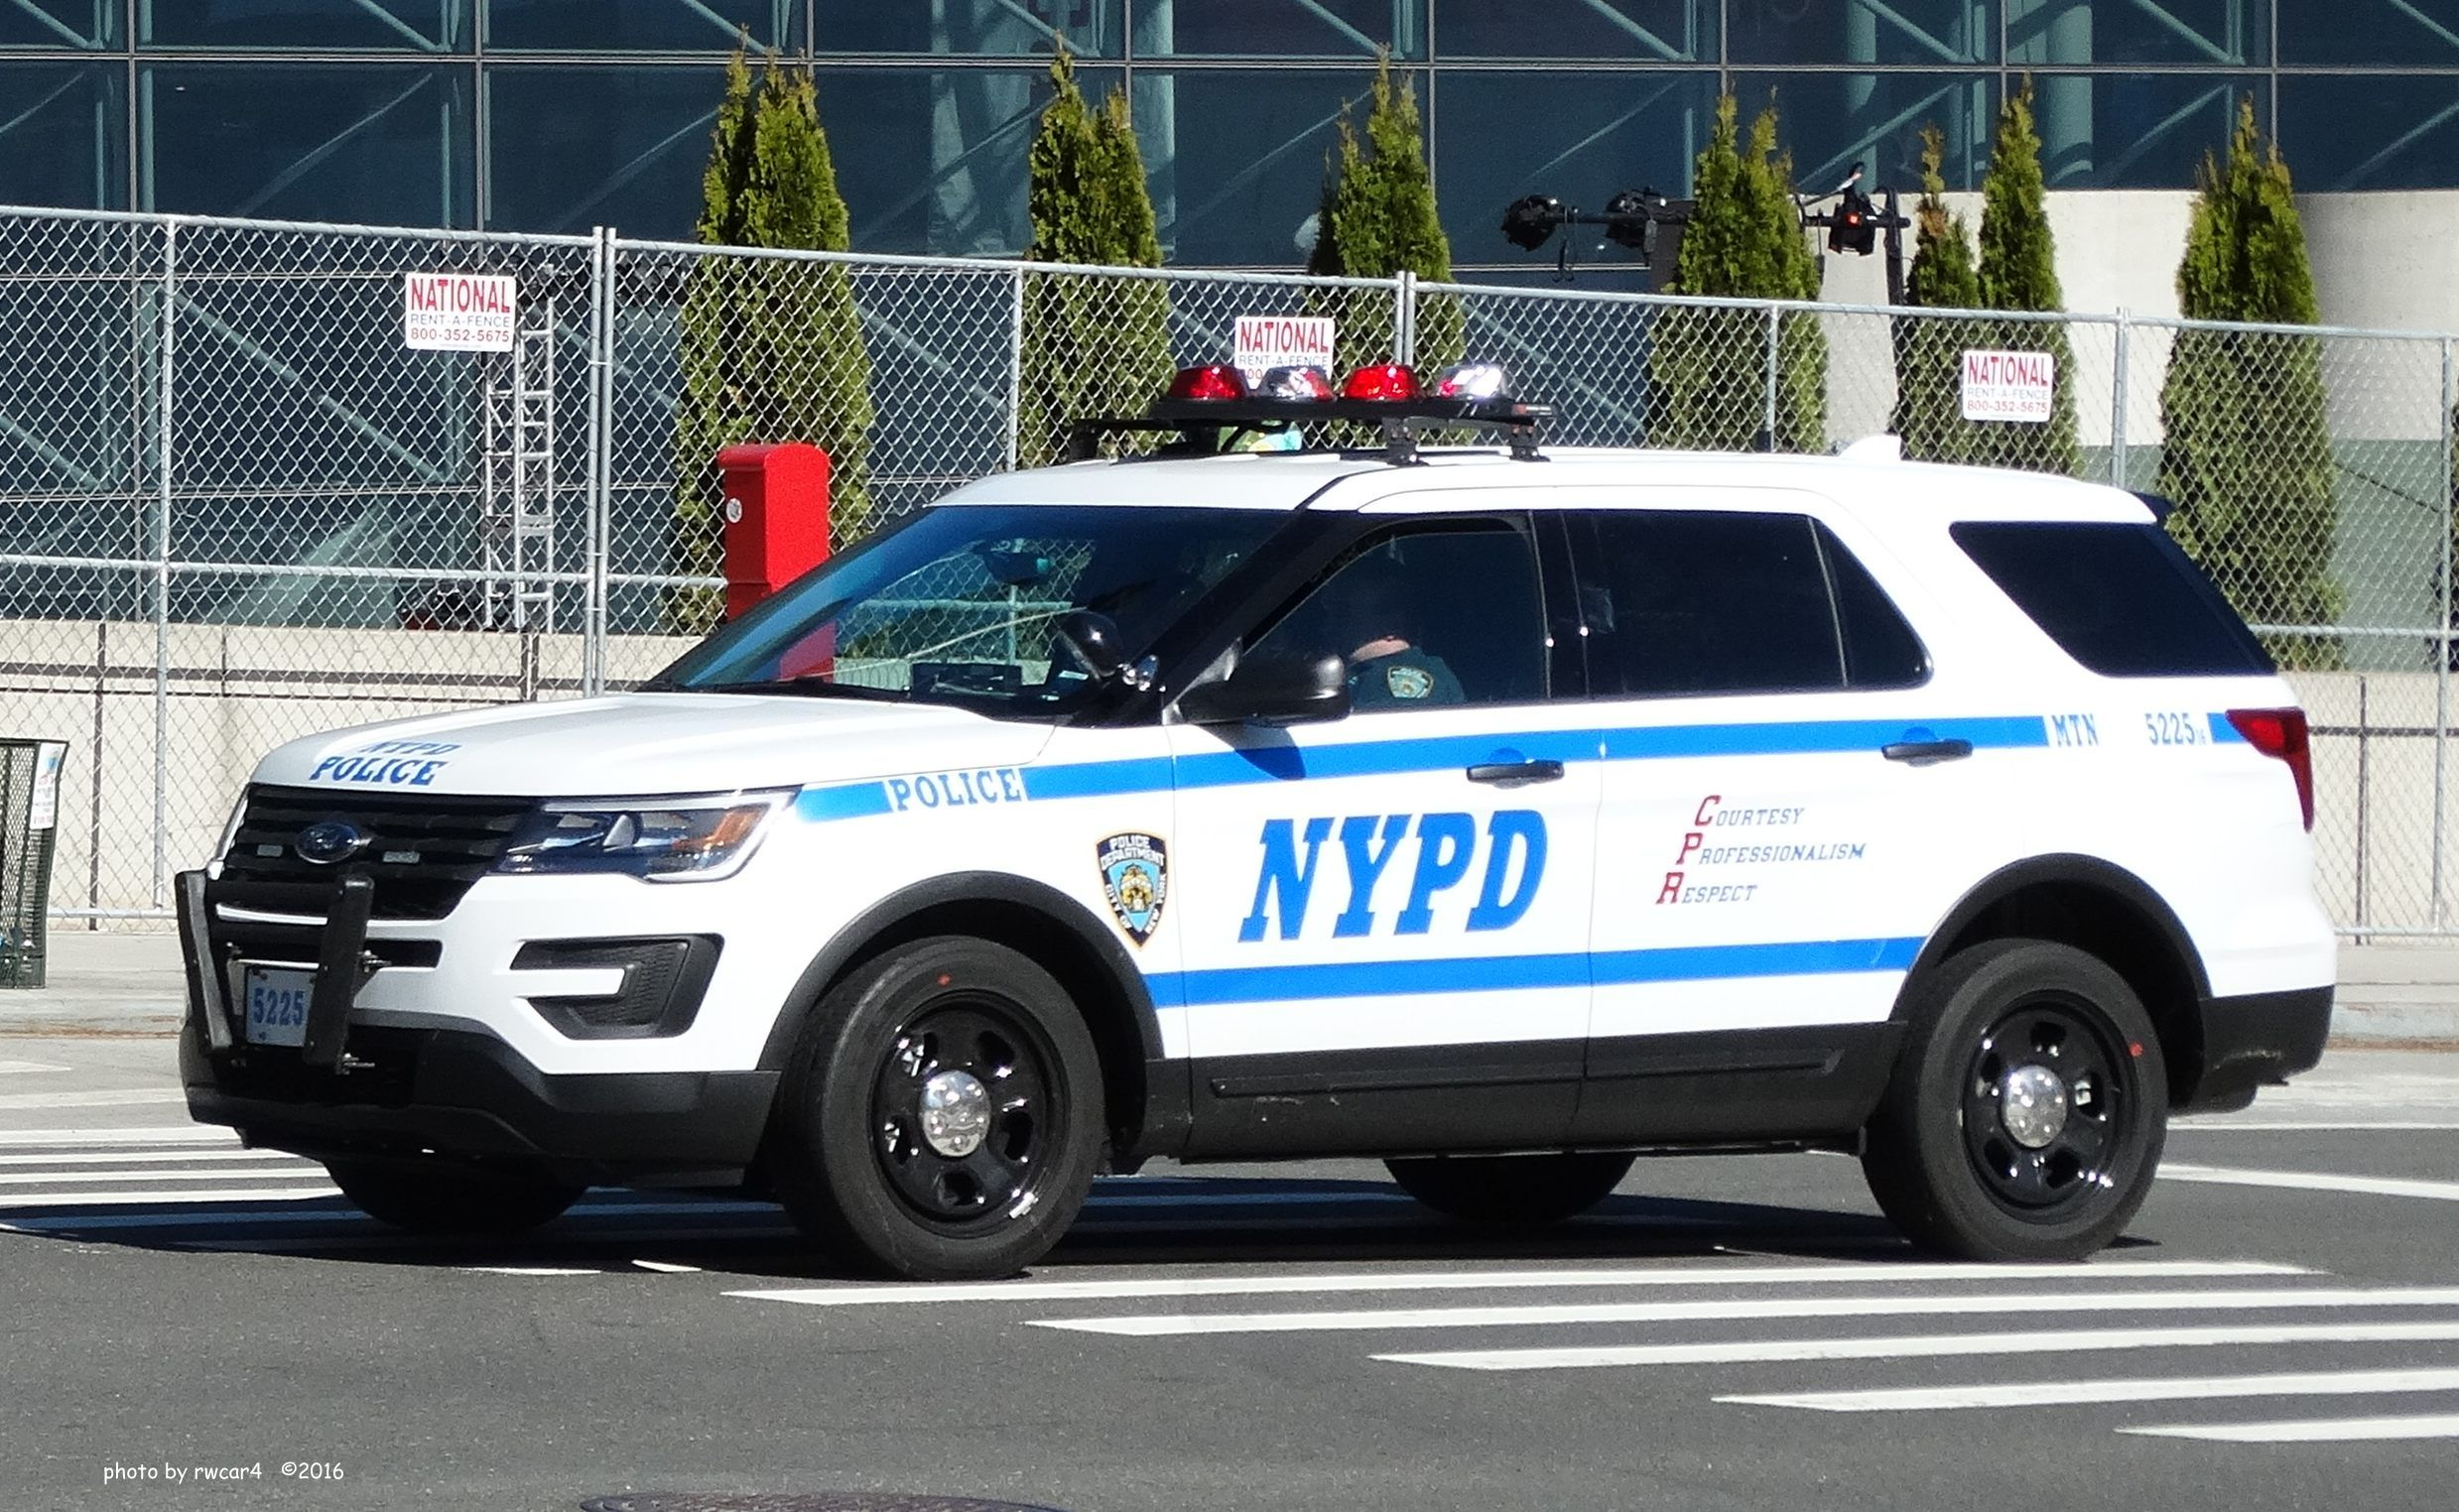 New York Nypd Ford Police Interceptor Vehicle